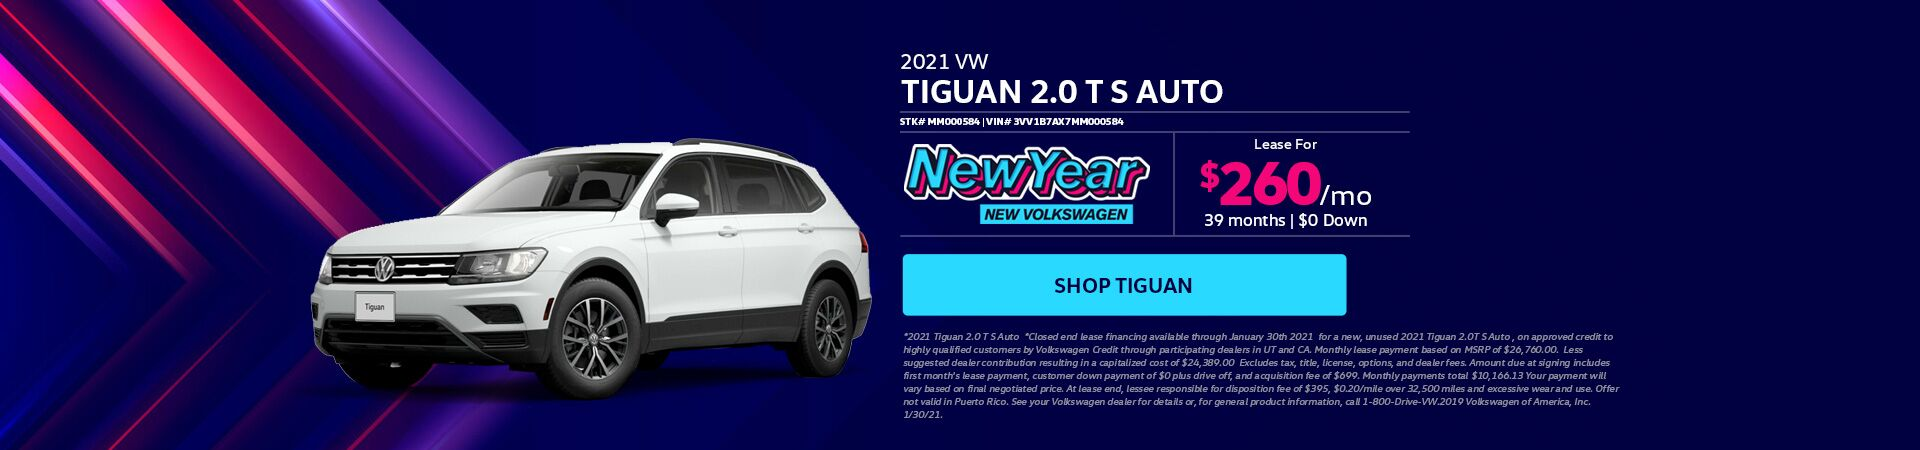 VW Tiguan - updated 01.08.21